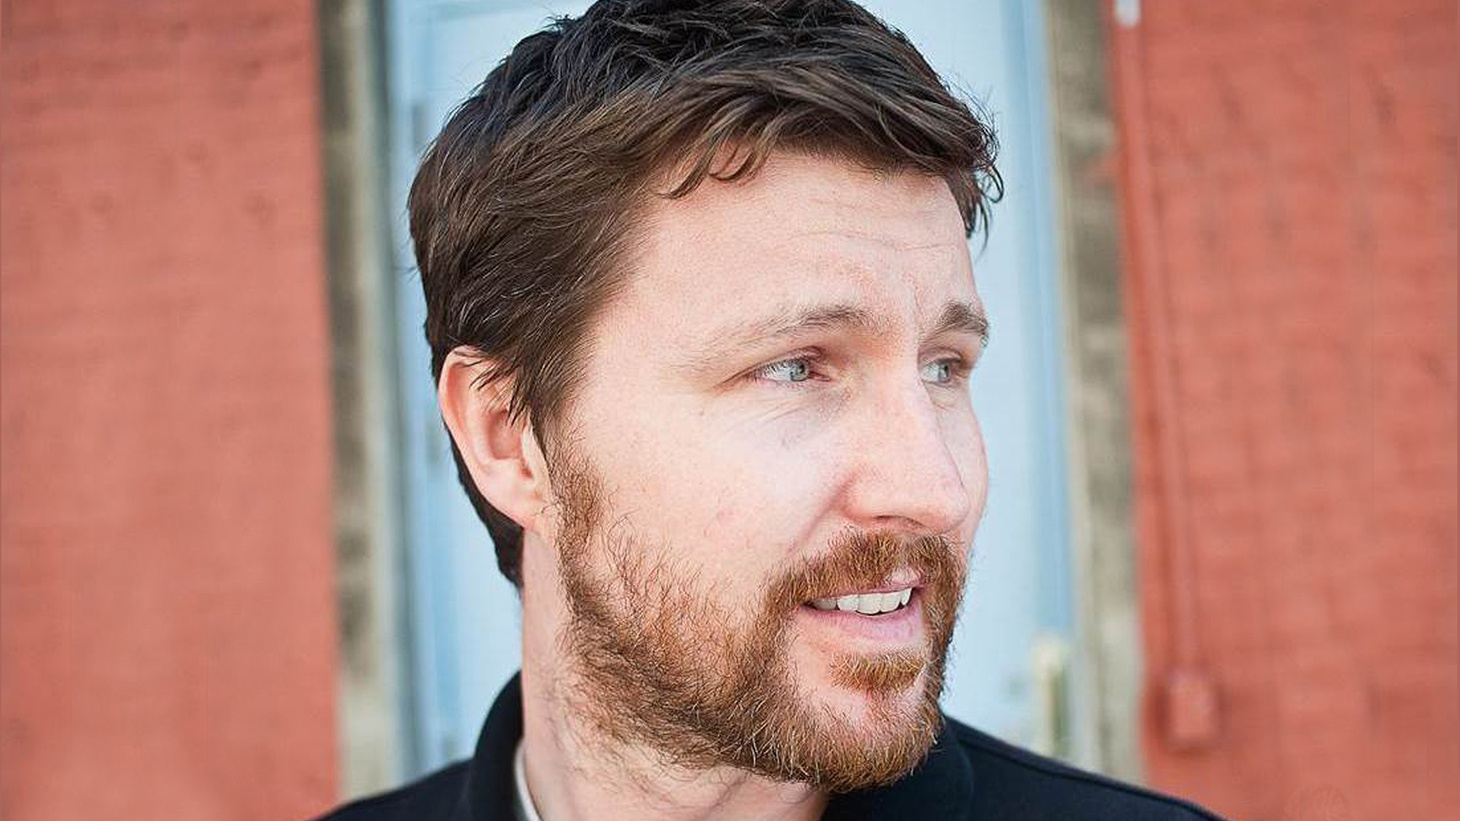 Filmmaker Andrew Haigh had a difficult time funding his first film, a small indie drama called Weekend. When that movie charmed critics, everything changed. He tells us about his new film 45 Years.